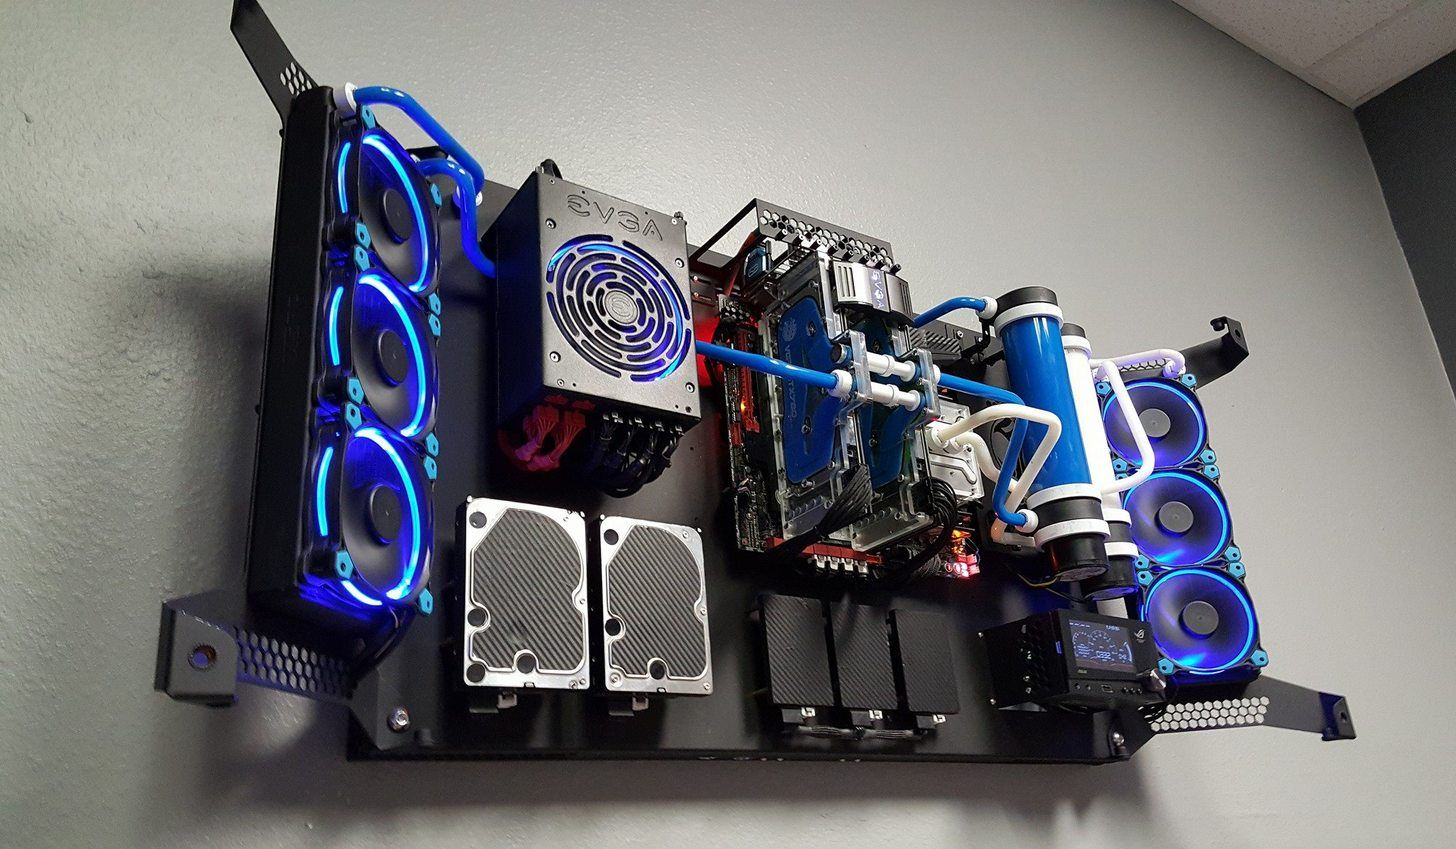 Evolution Of Feros wall mounted PC case - Evolution Of Feros Wall Mounted PC Case Pc Cases